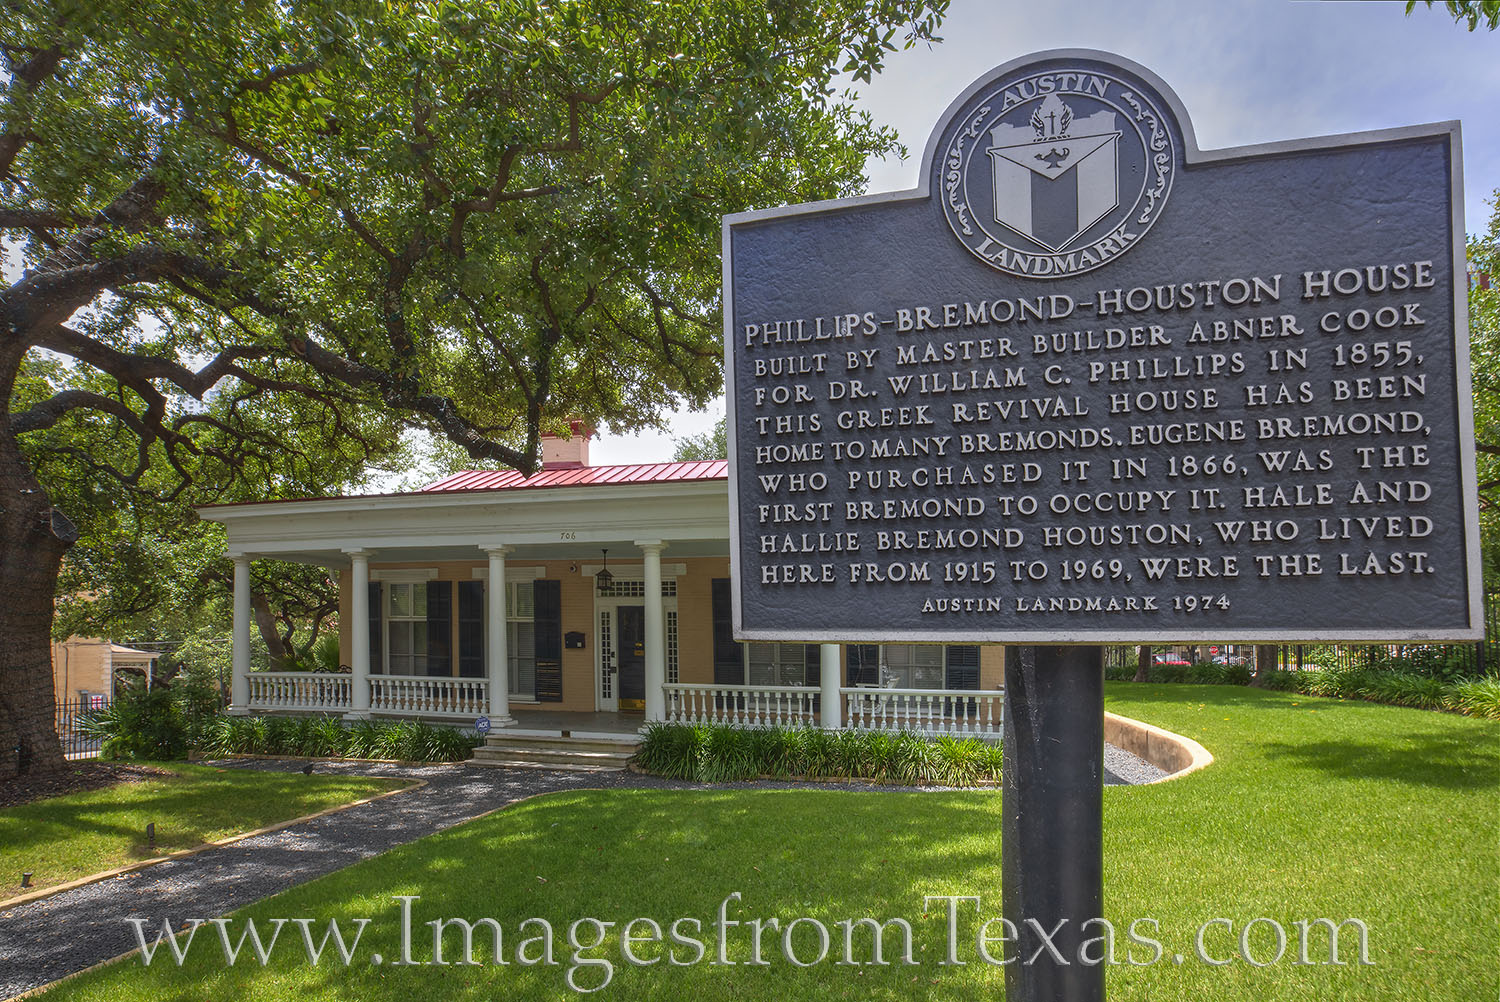 The Phillips-Bremond-Houston House was contructed by Abner Cook in 1855. This house one of 11 houses as part of the Bremond Historic...